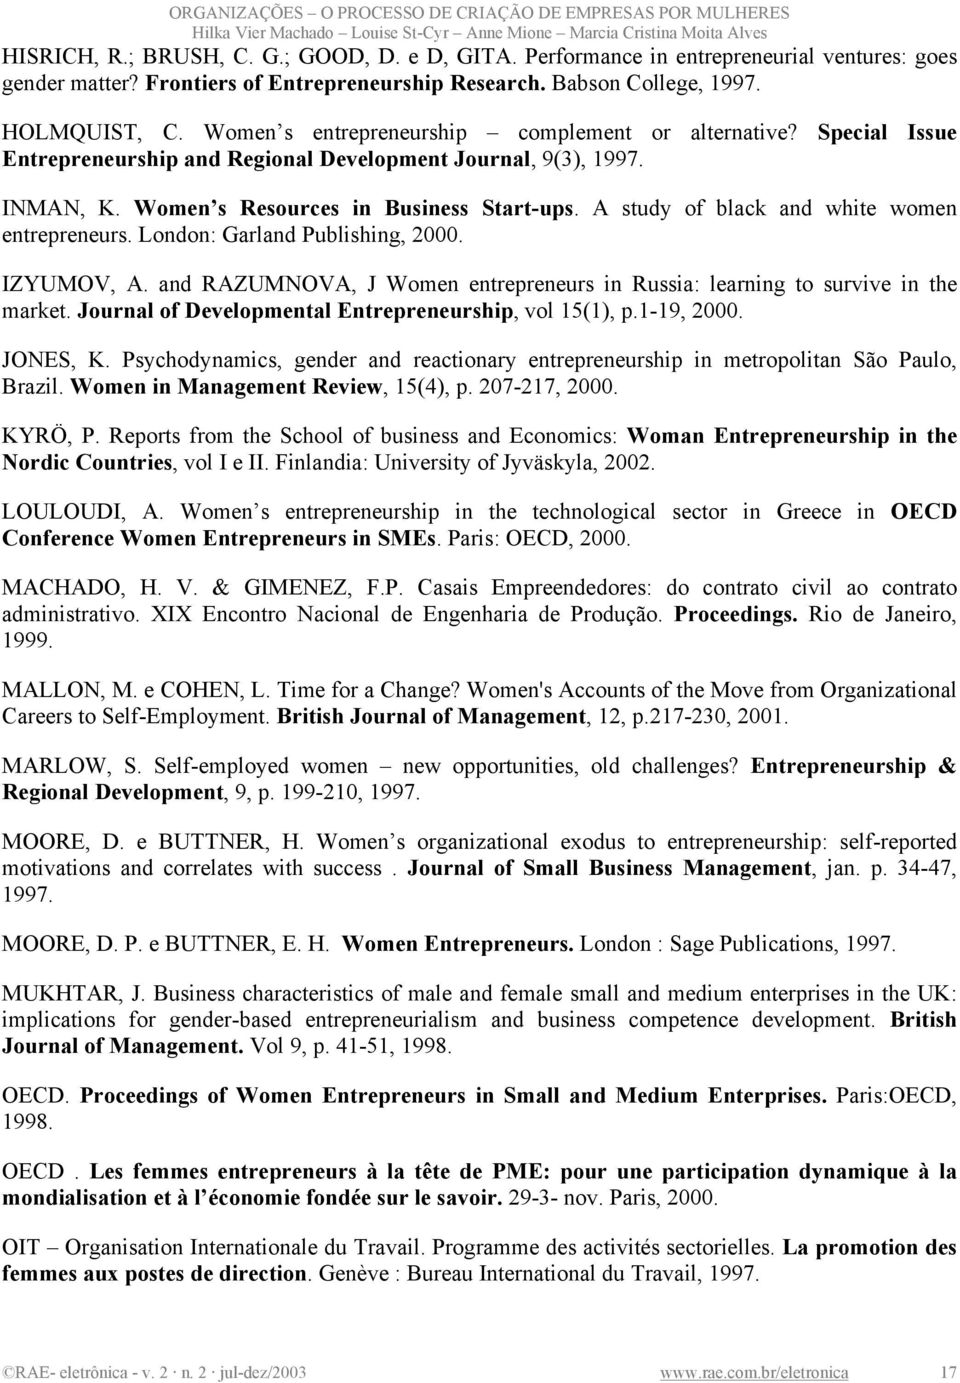 A study of black and white women entrepreneurs. London: Garland Publishing, 2000. IZYUMOV, A. and RAZUMNOVA, J Women entrepreneurs in Russia: learning to survive in the market.